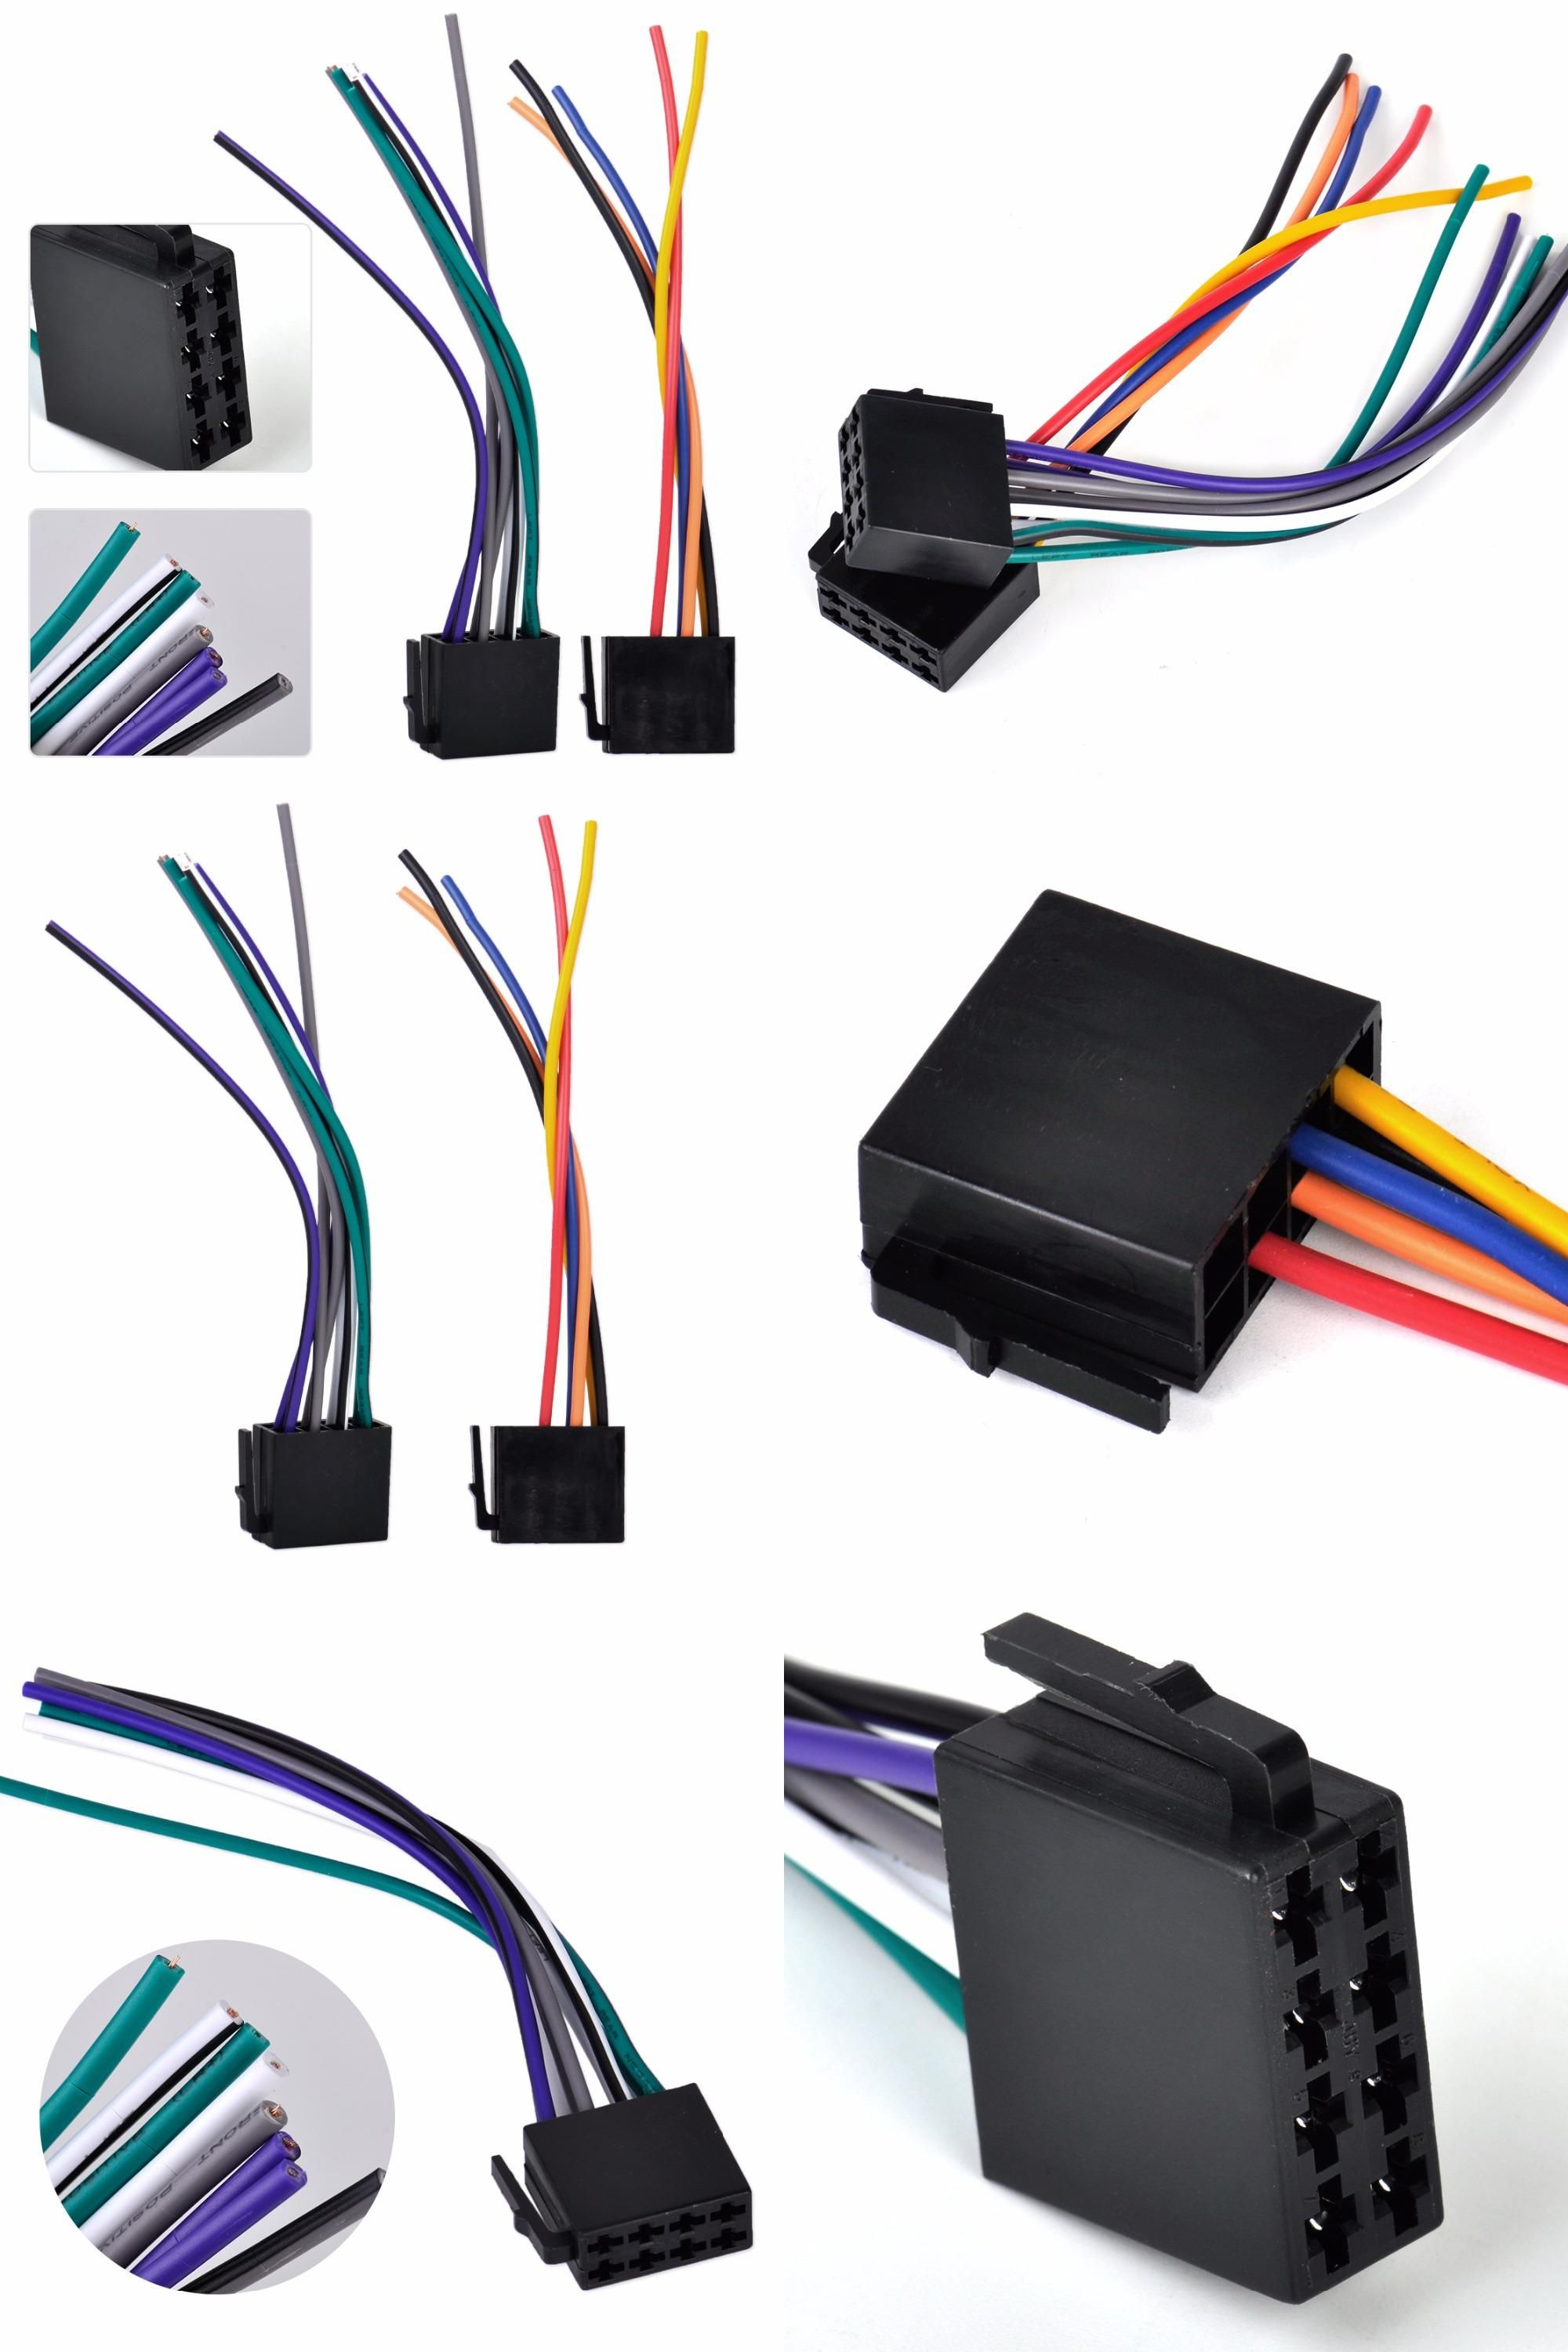 ac00bb6b251465f58005a5497ae8ab74 visit to buy] new universal iso wire harness female adapter Wiring Harness Diagram at n-0.co